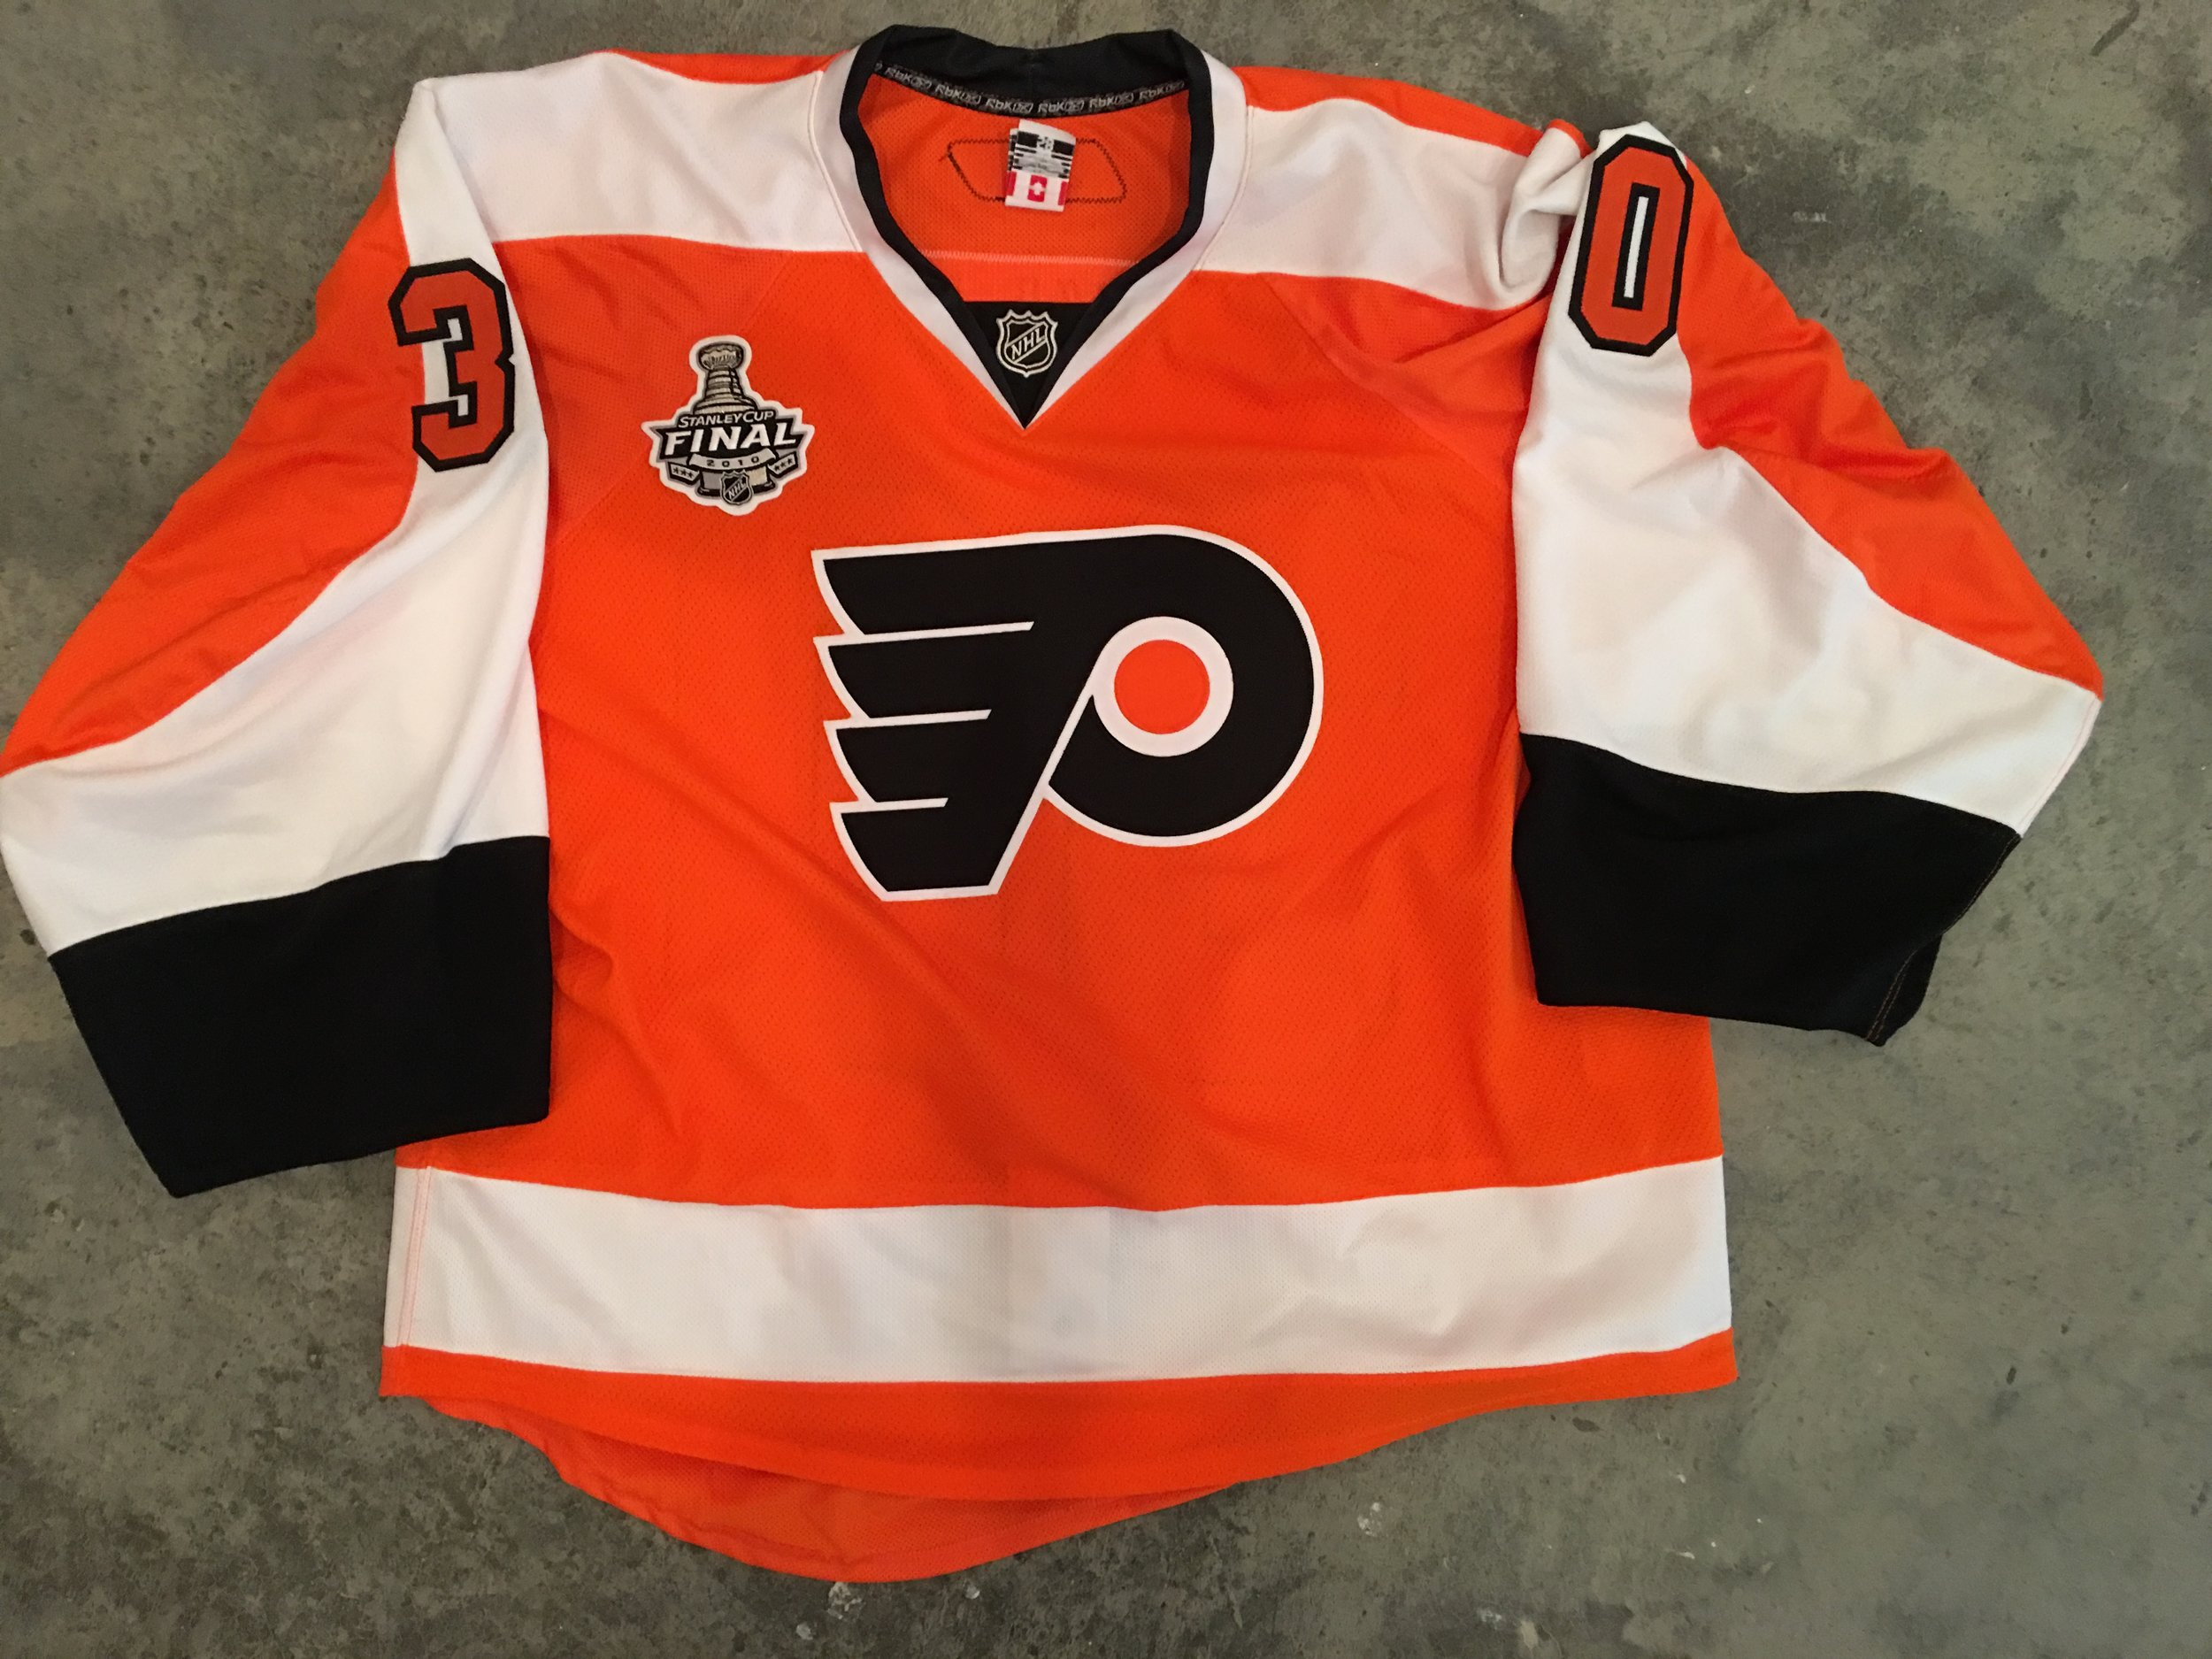 2010 Philadelphia Flyers Stanley Cup Finals Game Issued Home Jersey - Johan Backlund